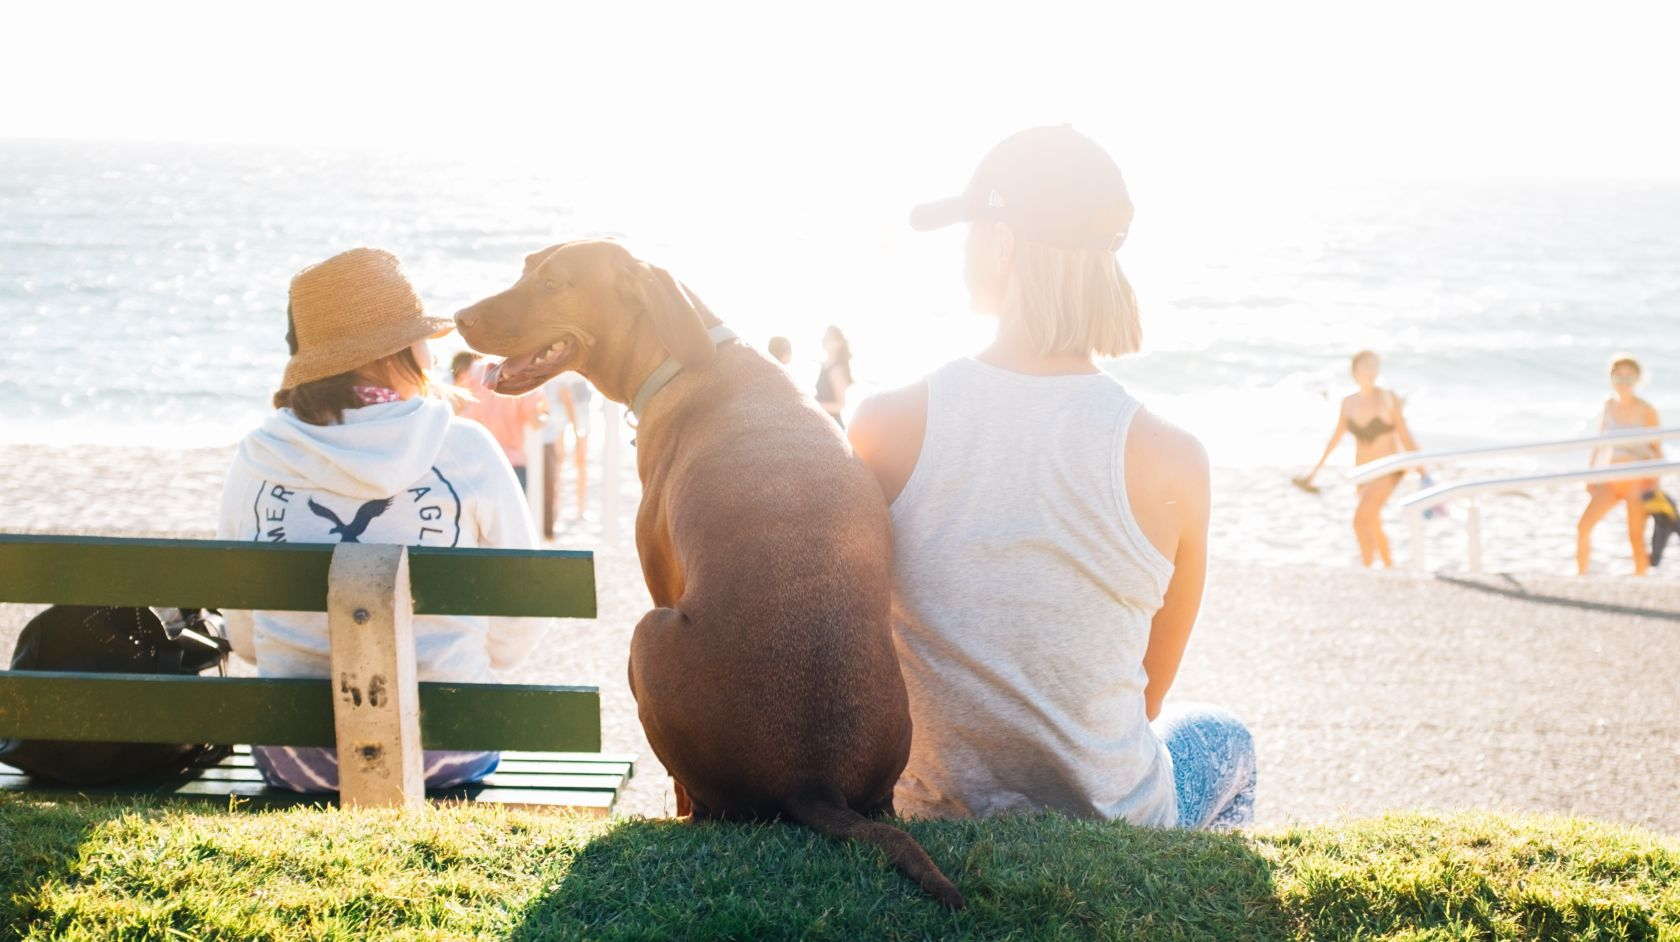 Dog and woman sitting overlooking the beach in Los Osos, California